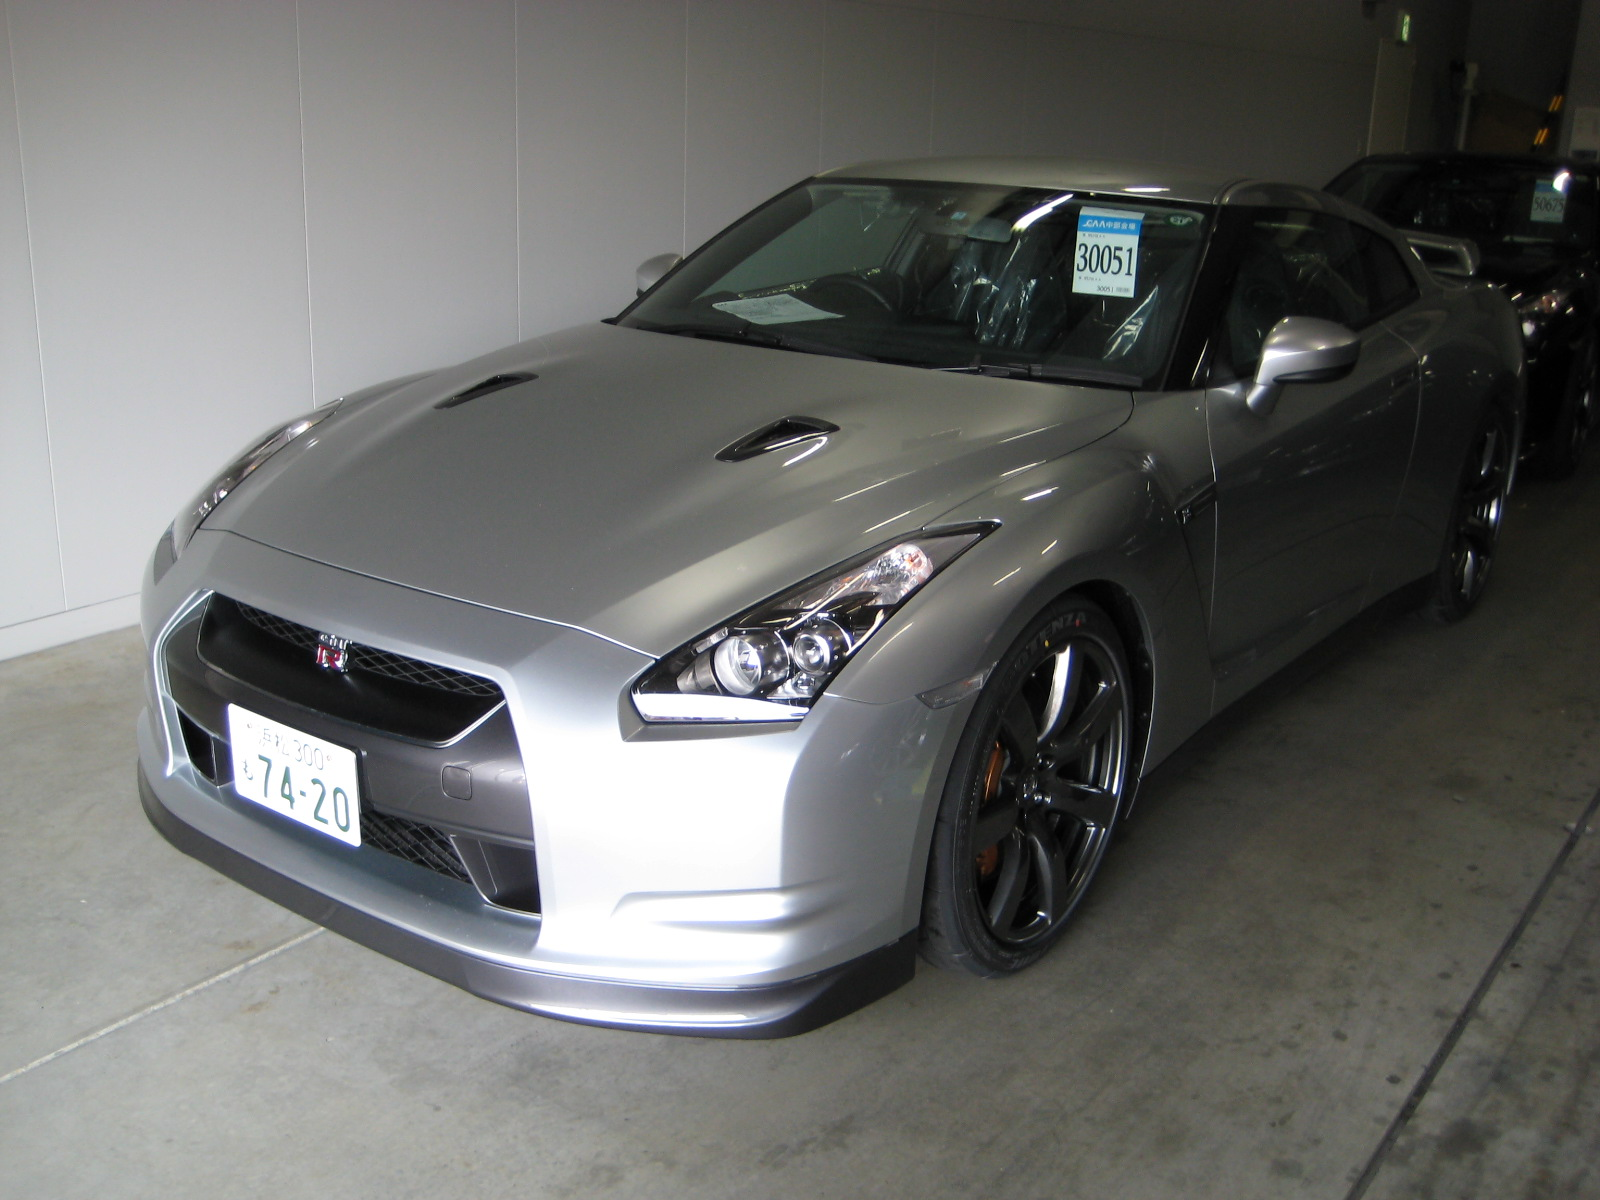 The first R35 GT-R I had ever seen in the metal - BIG news at the time!